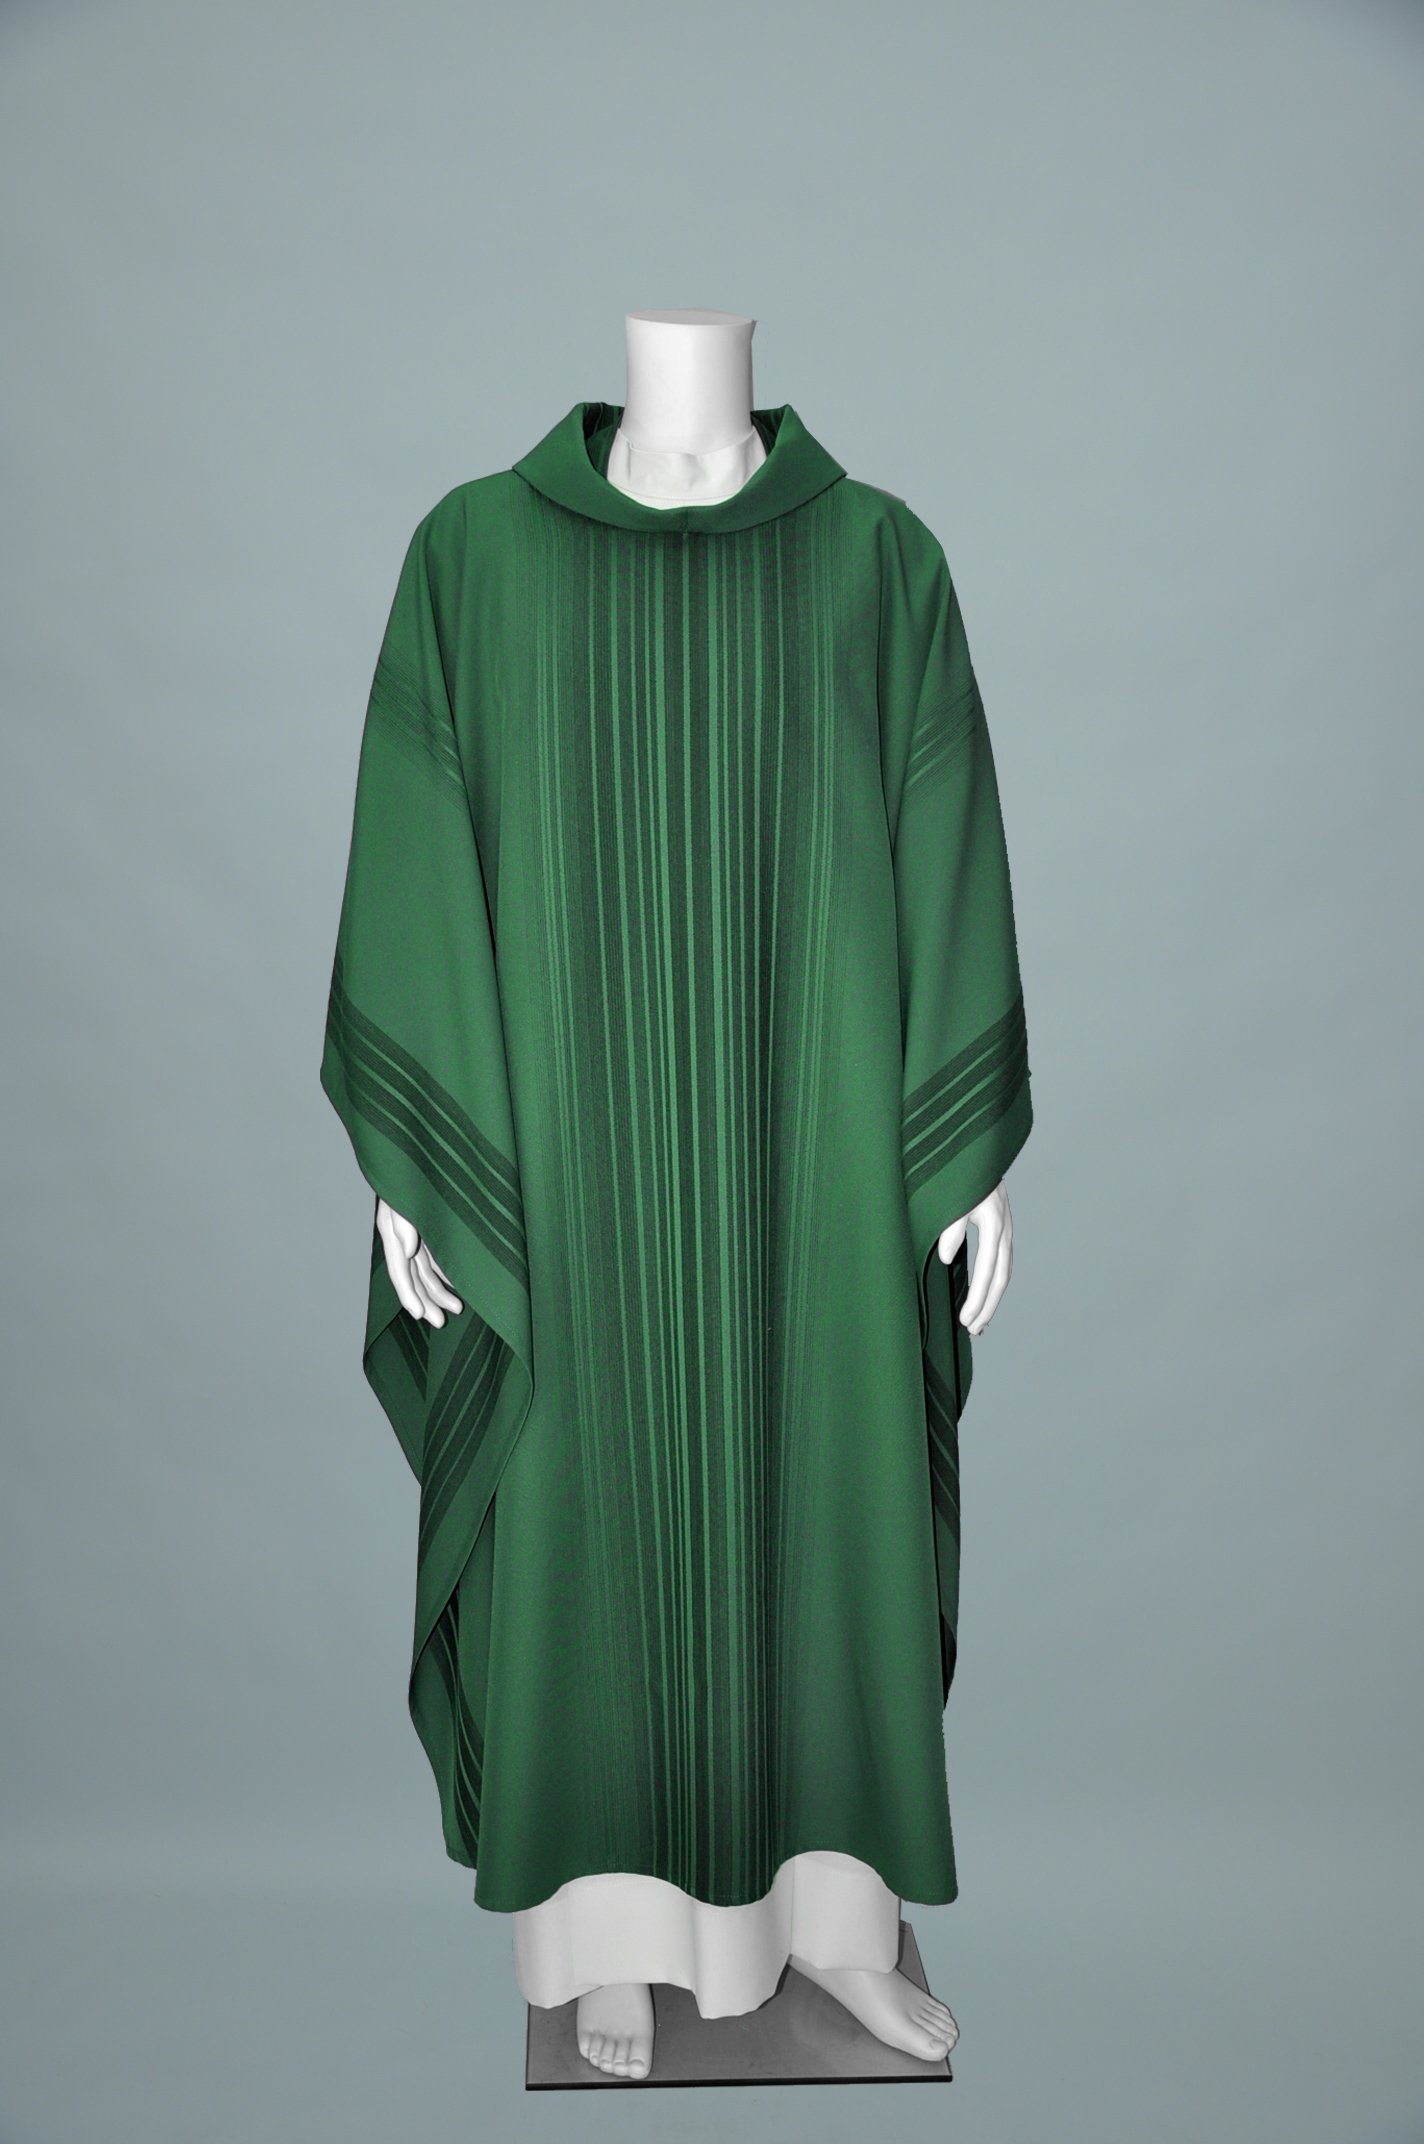 Mone Green Chasuble & Stole (f) 1